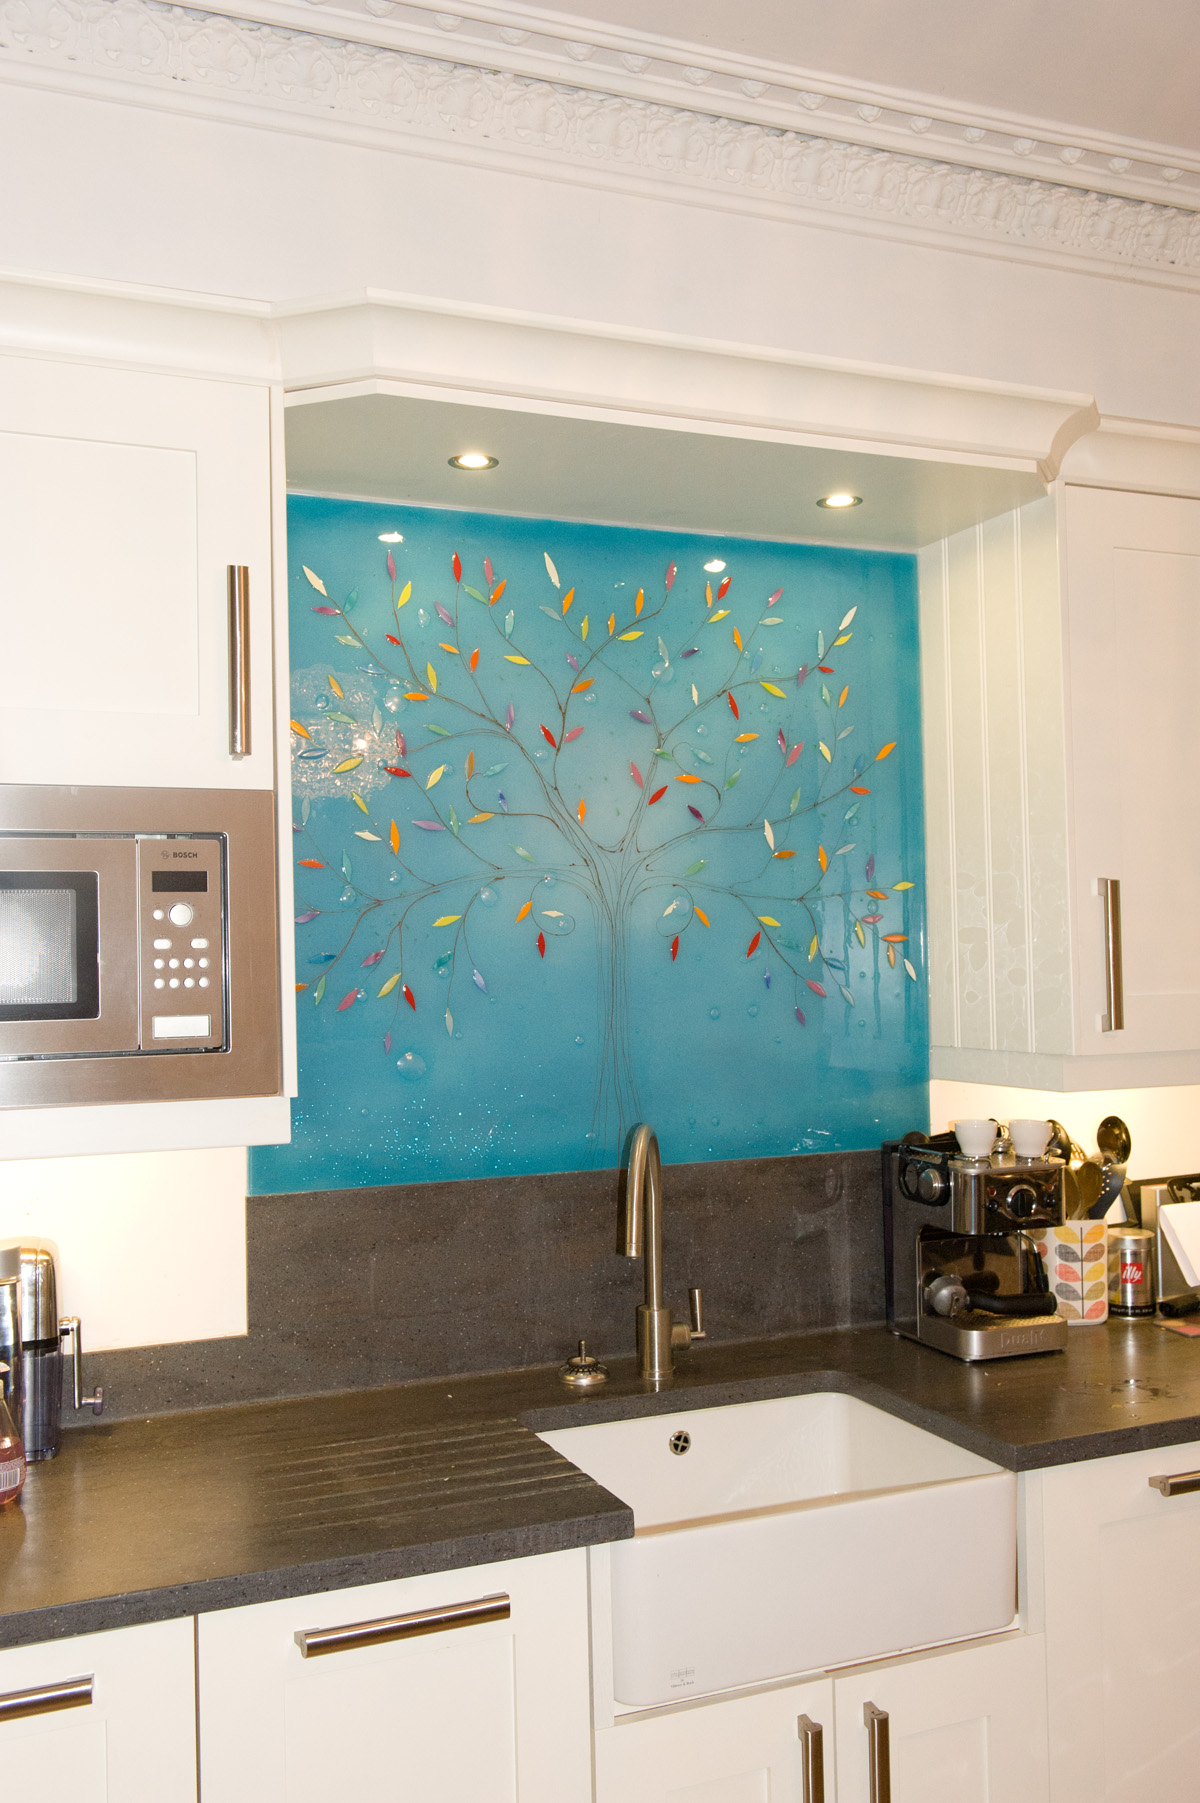 If you've been looking for glass splashbacks Kent-wide, then this gorgeous piece should definitely catch your eye.